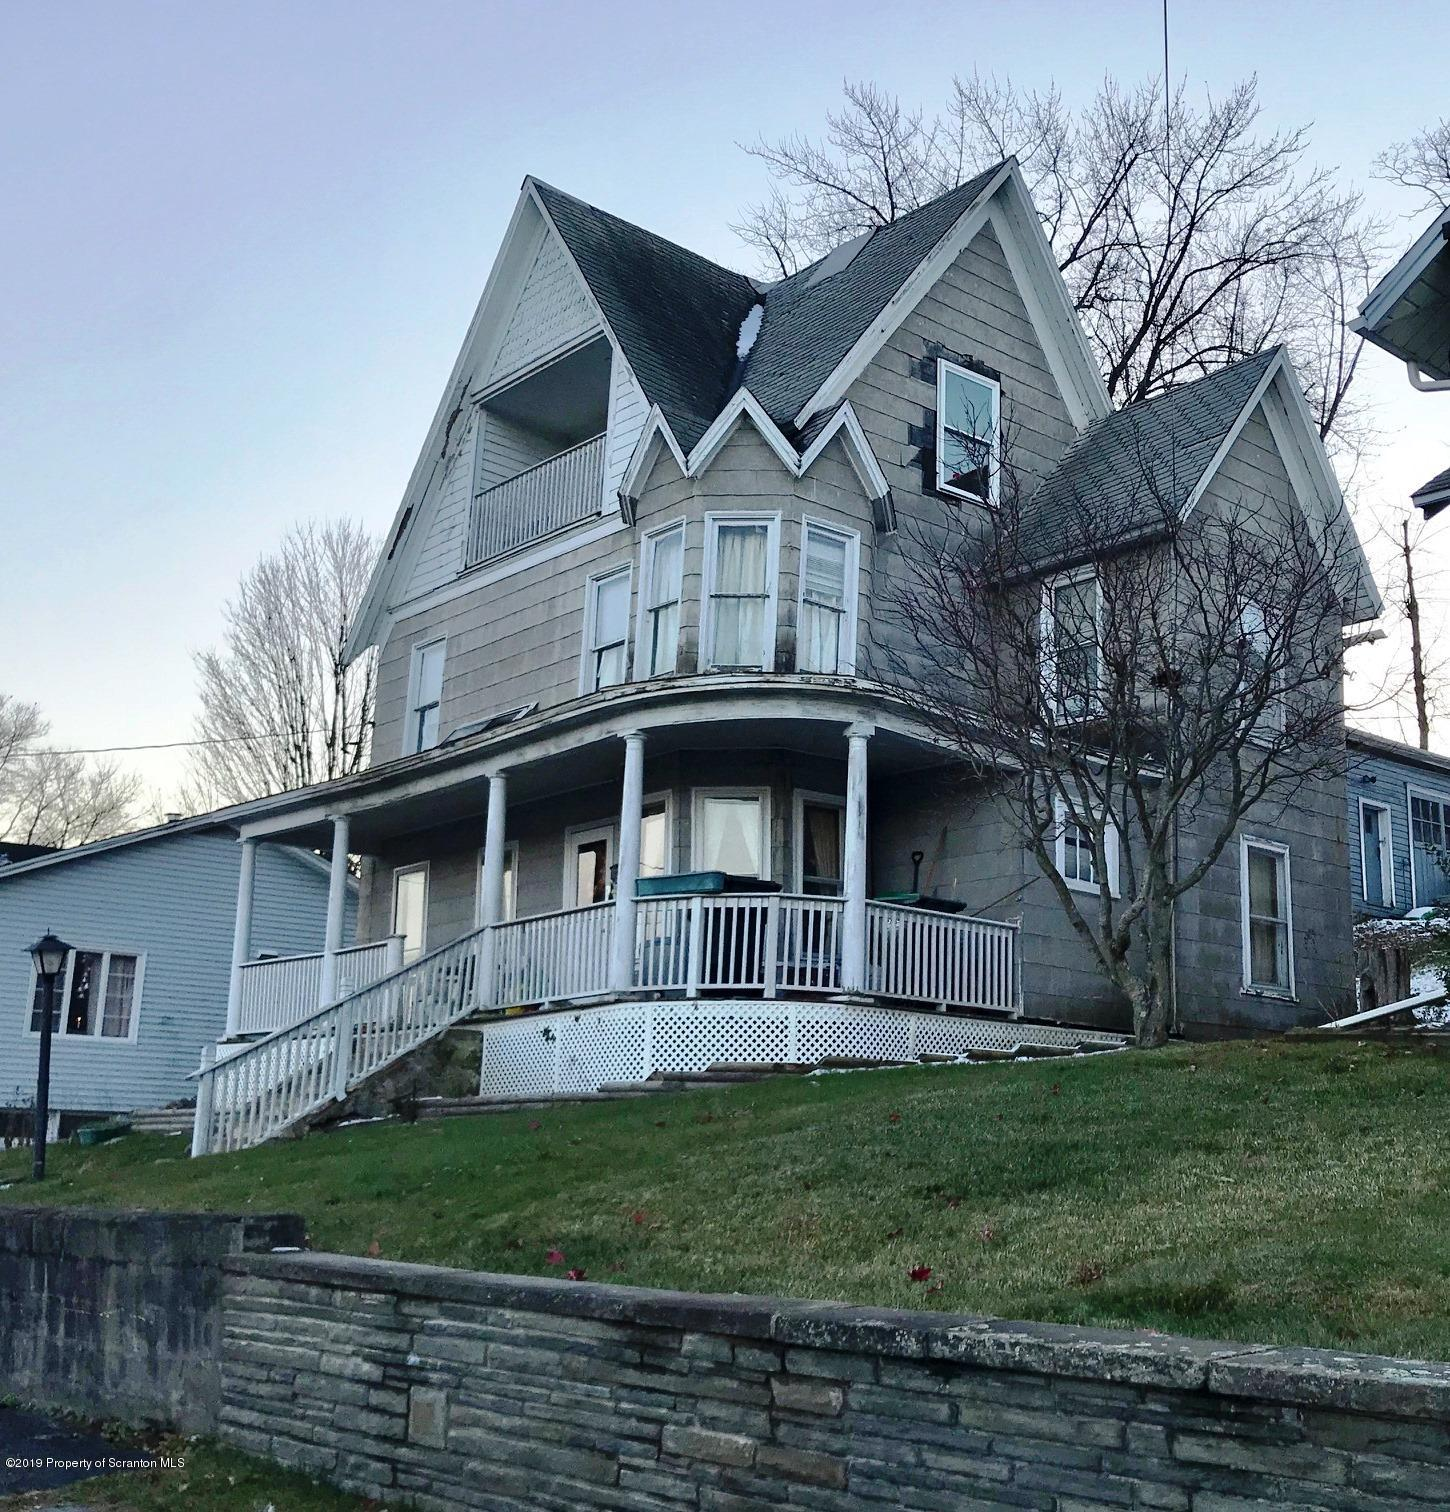 633 Railroad St, Forest City, Pennsylvania 18421, 5 Bedrooms Bedrooms, 8 Rooms Rooms,2 BathroomsBathrooms,Single Family,For Sale,Railroad,19-5460